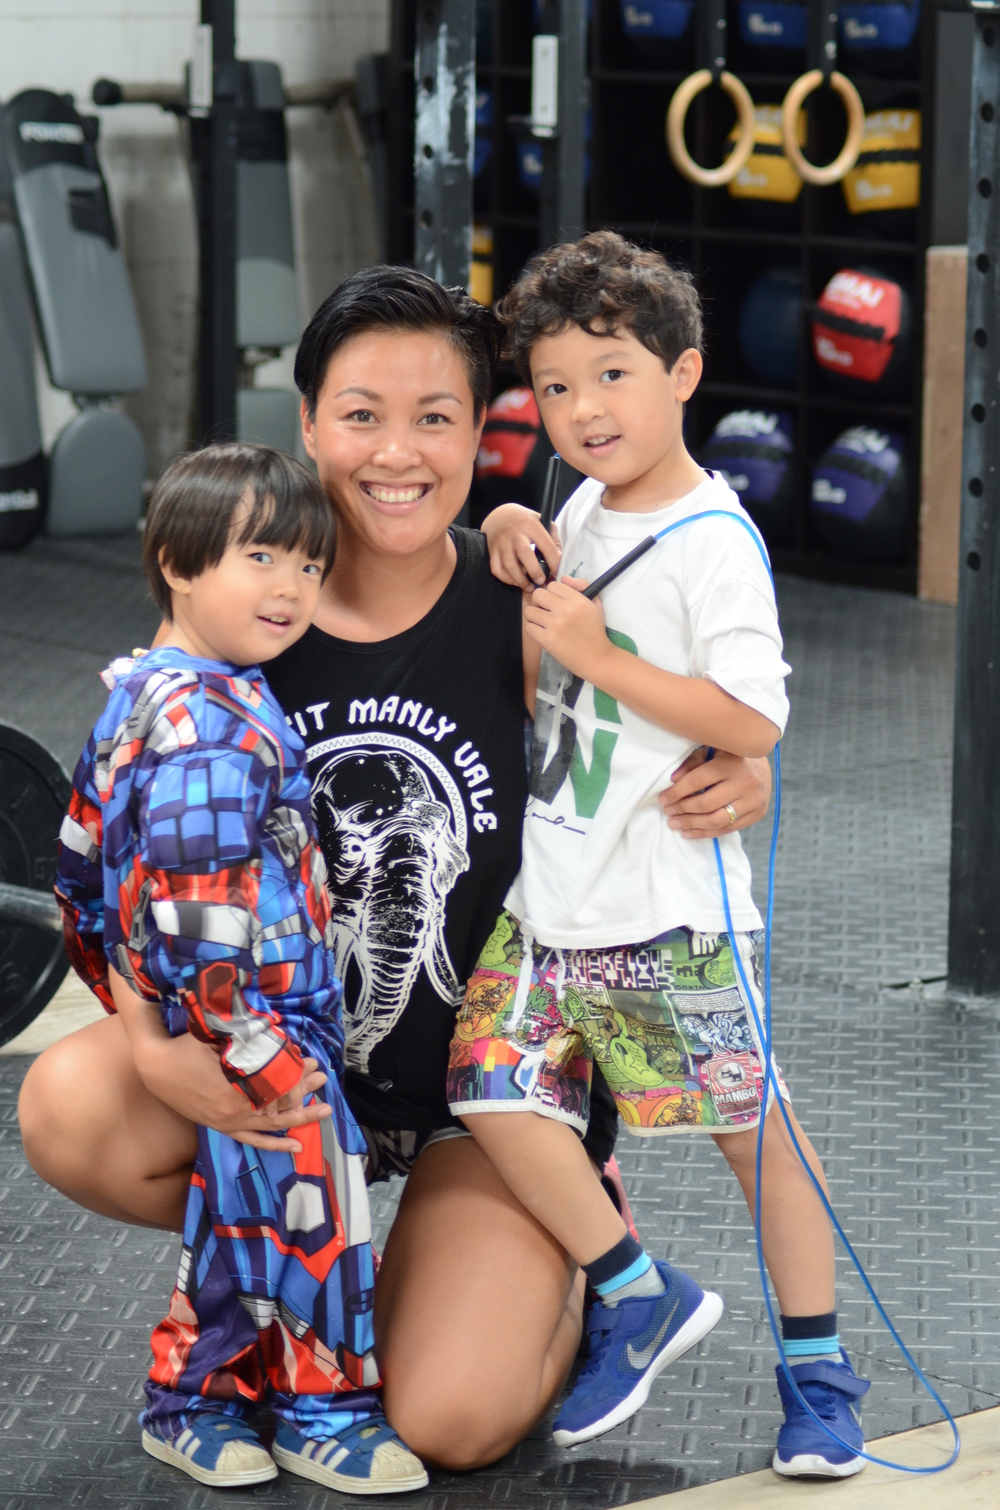 Natalie Sengchanh manages a family of six, a fitness business and a blog.  (Image via Natalie Sengchanh)